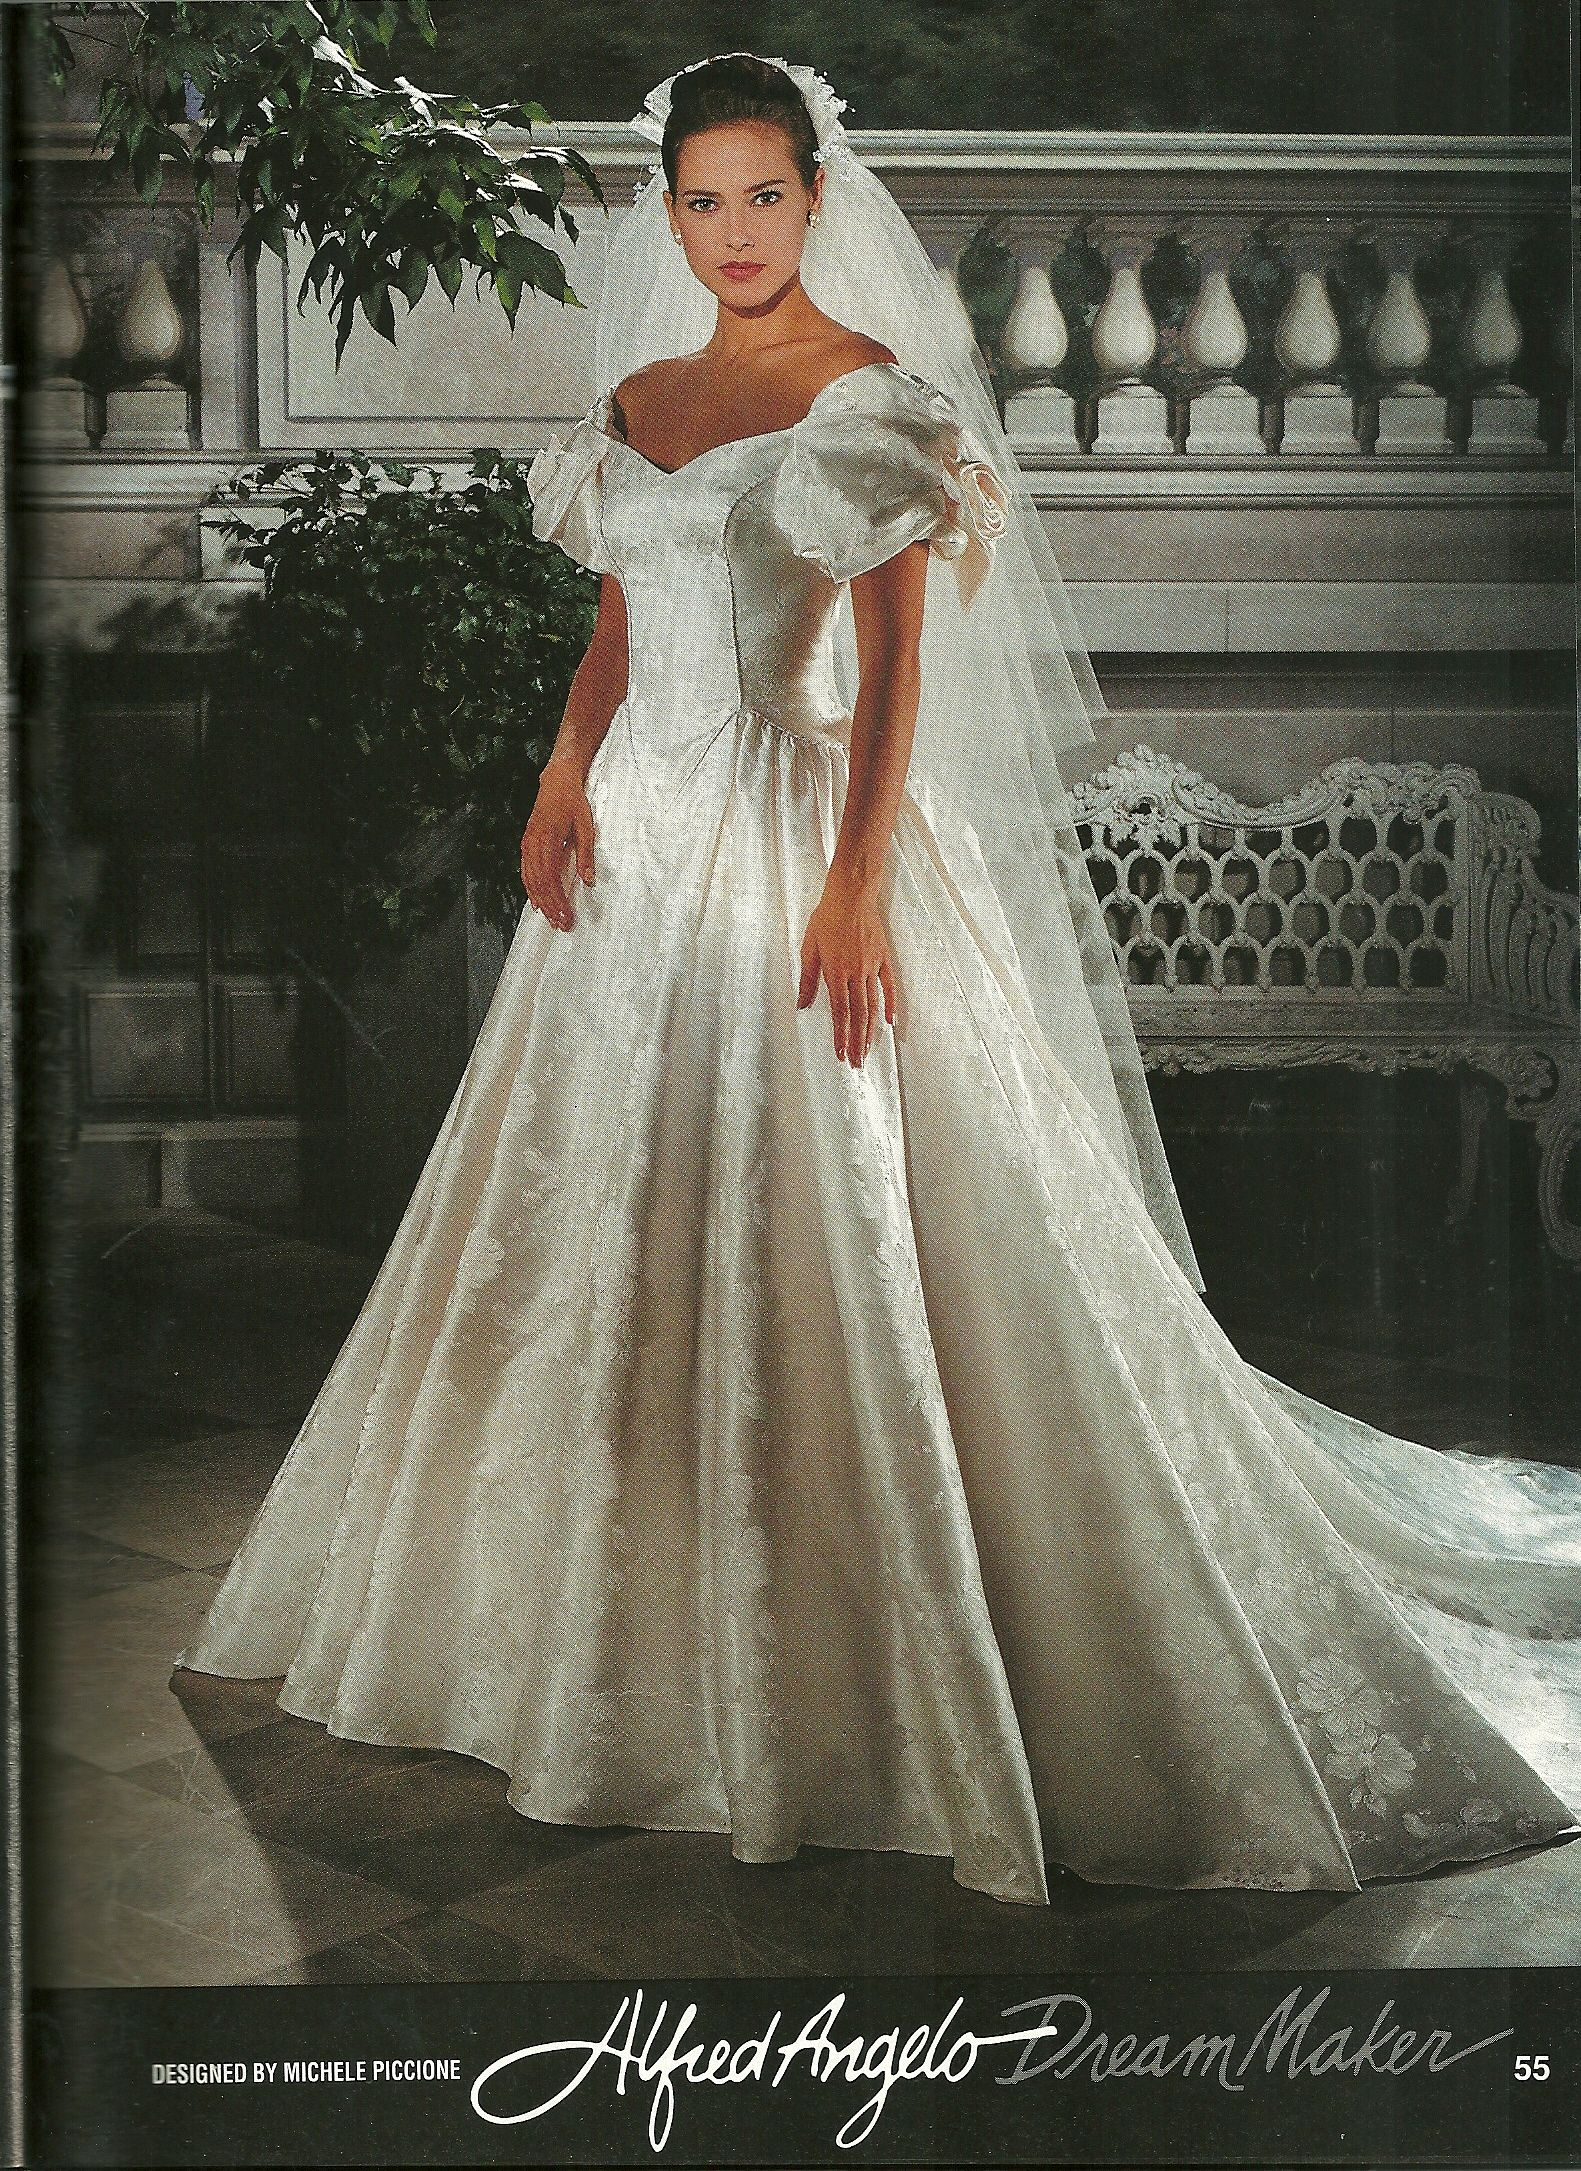 wedding dresses 90's wedding dresses 90's